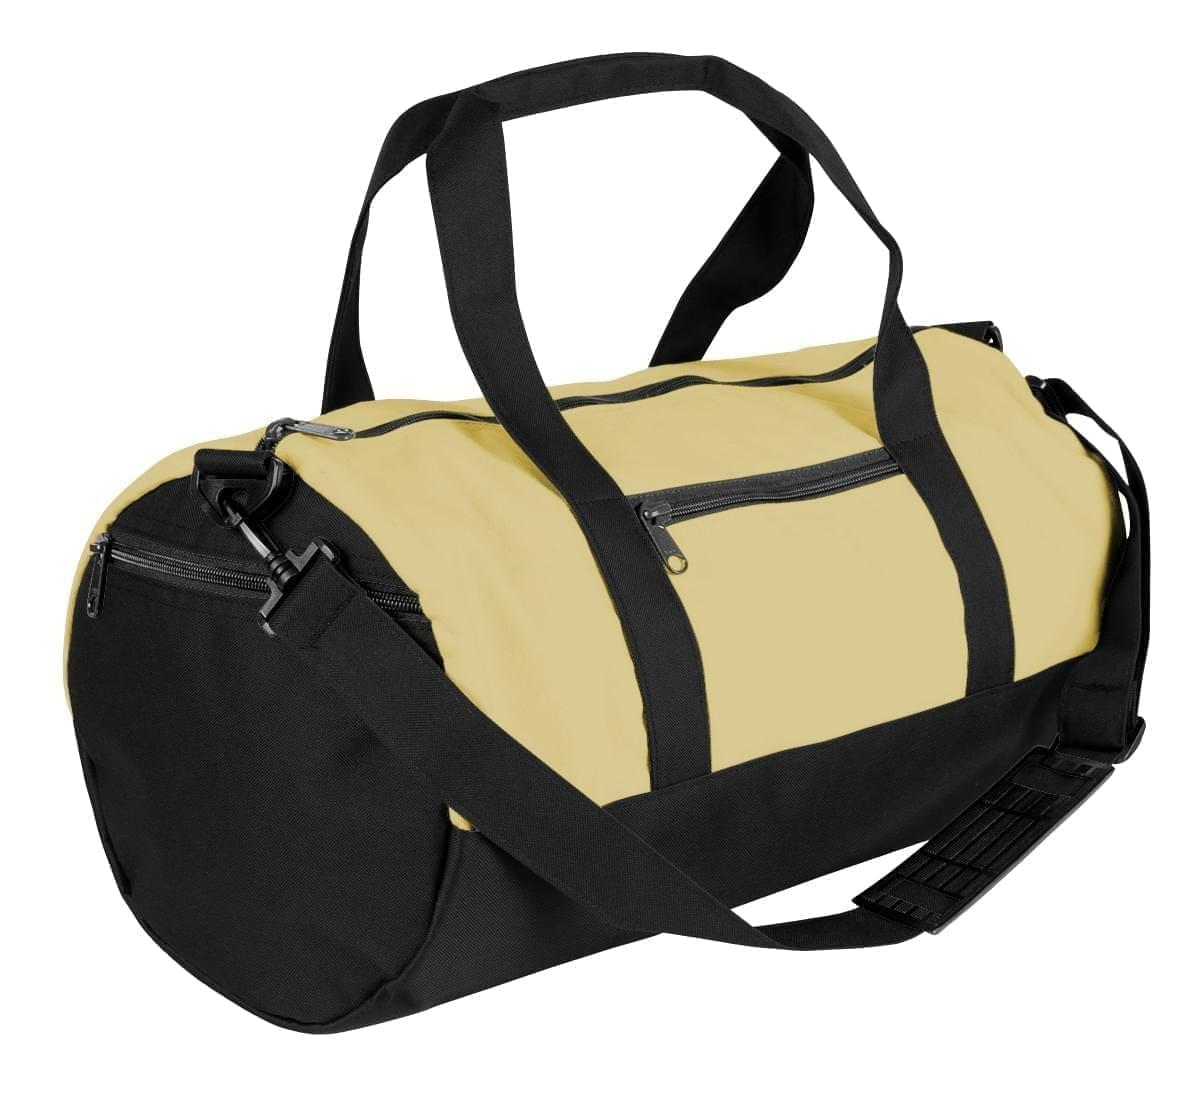 USA Made Heavy Canvas Athletic Barrel Bags, Natural-Black, PMLXZ2AAVR